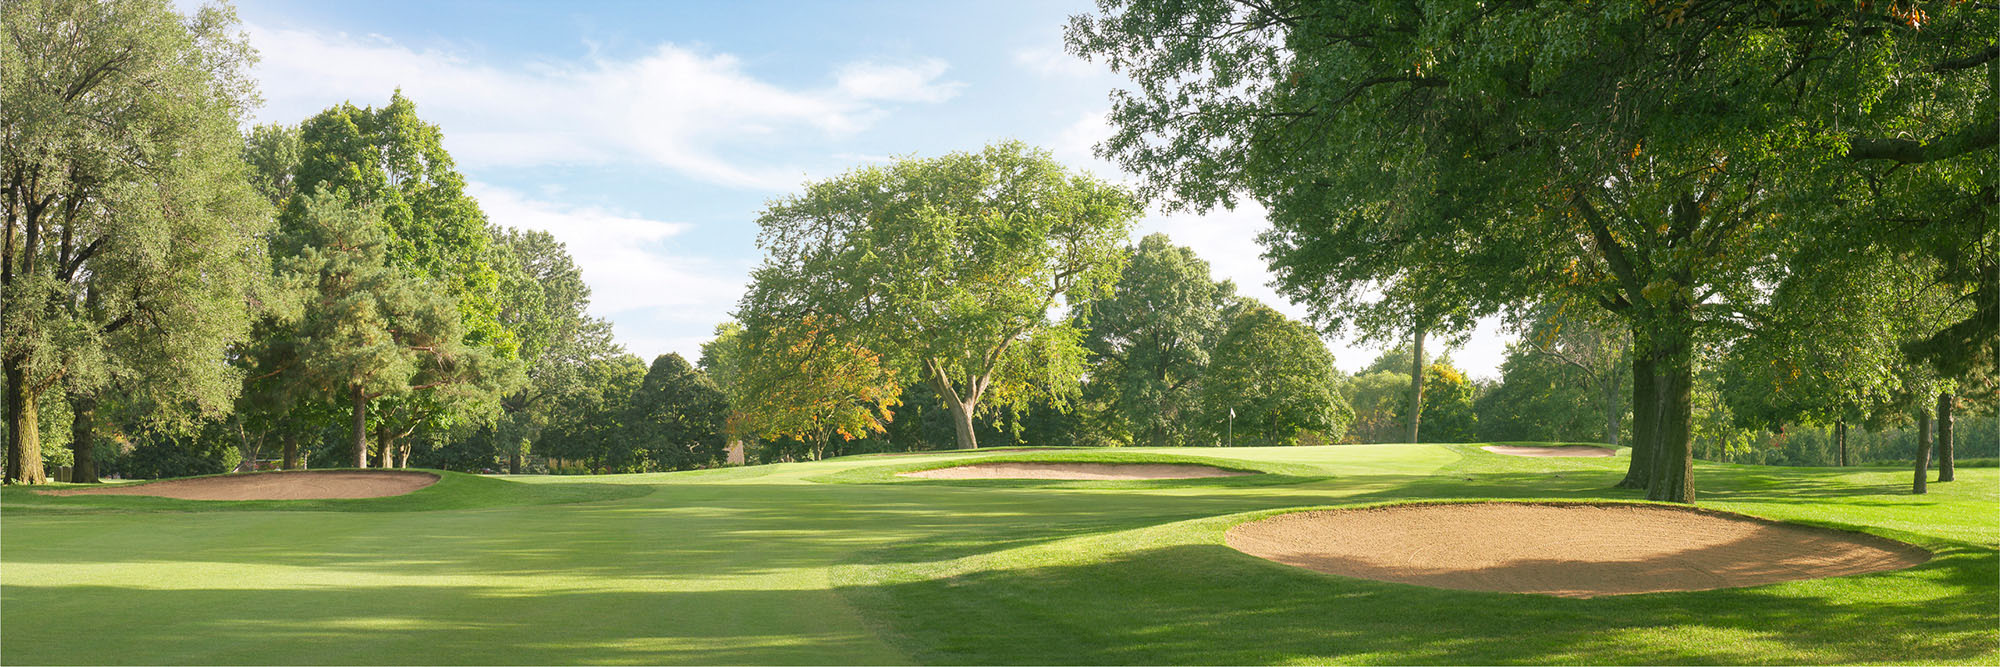 Golf Course Image - Milburn No. 17